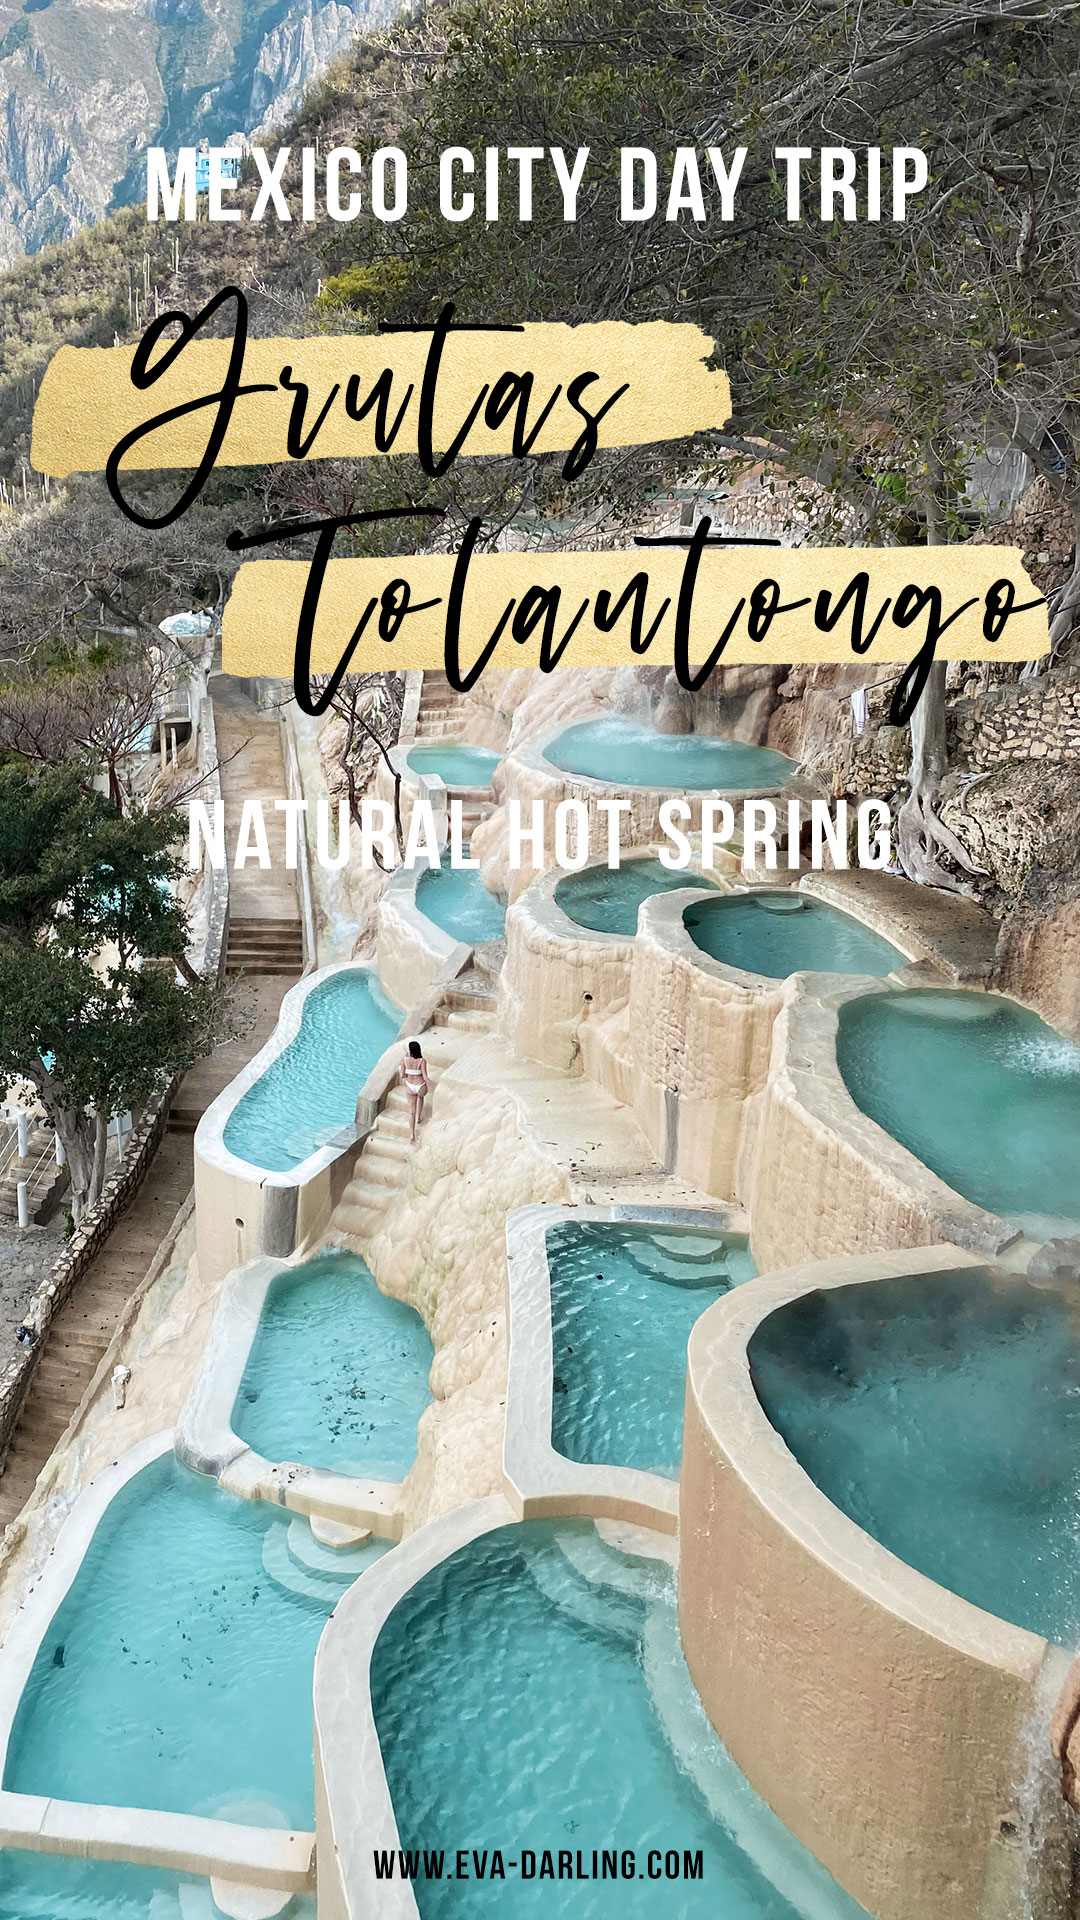 best mexico city day trip grutas tolantongo natural hot springs carved white stone thermal pools hidalgo mexico brunette woman walking turquoise water